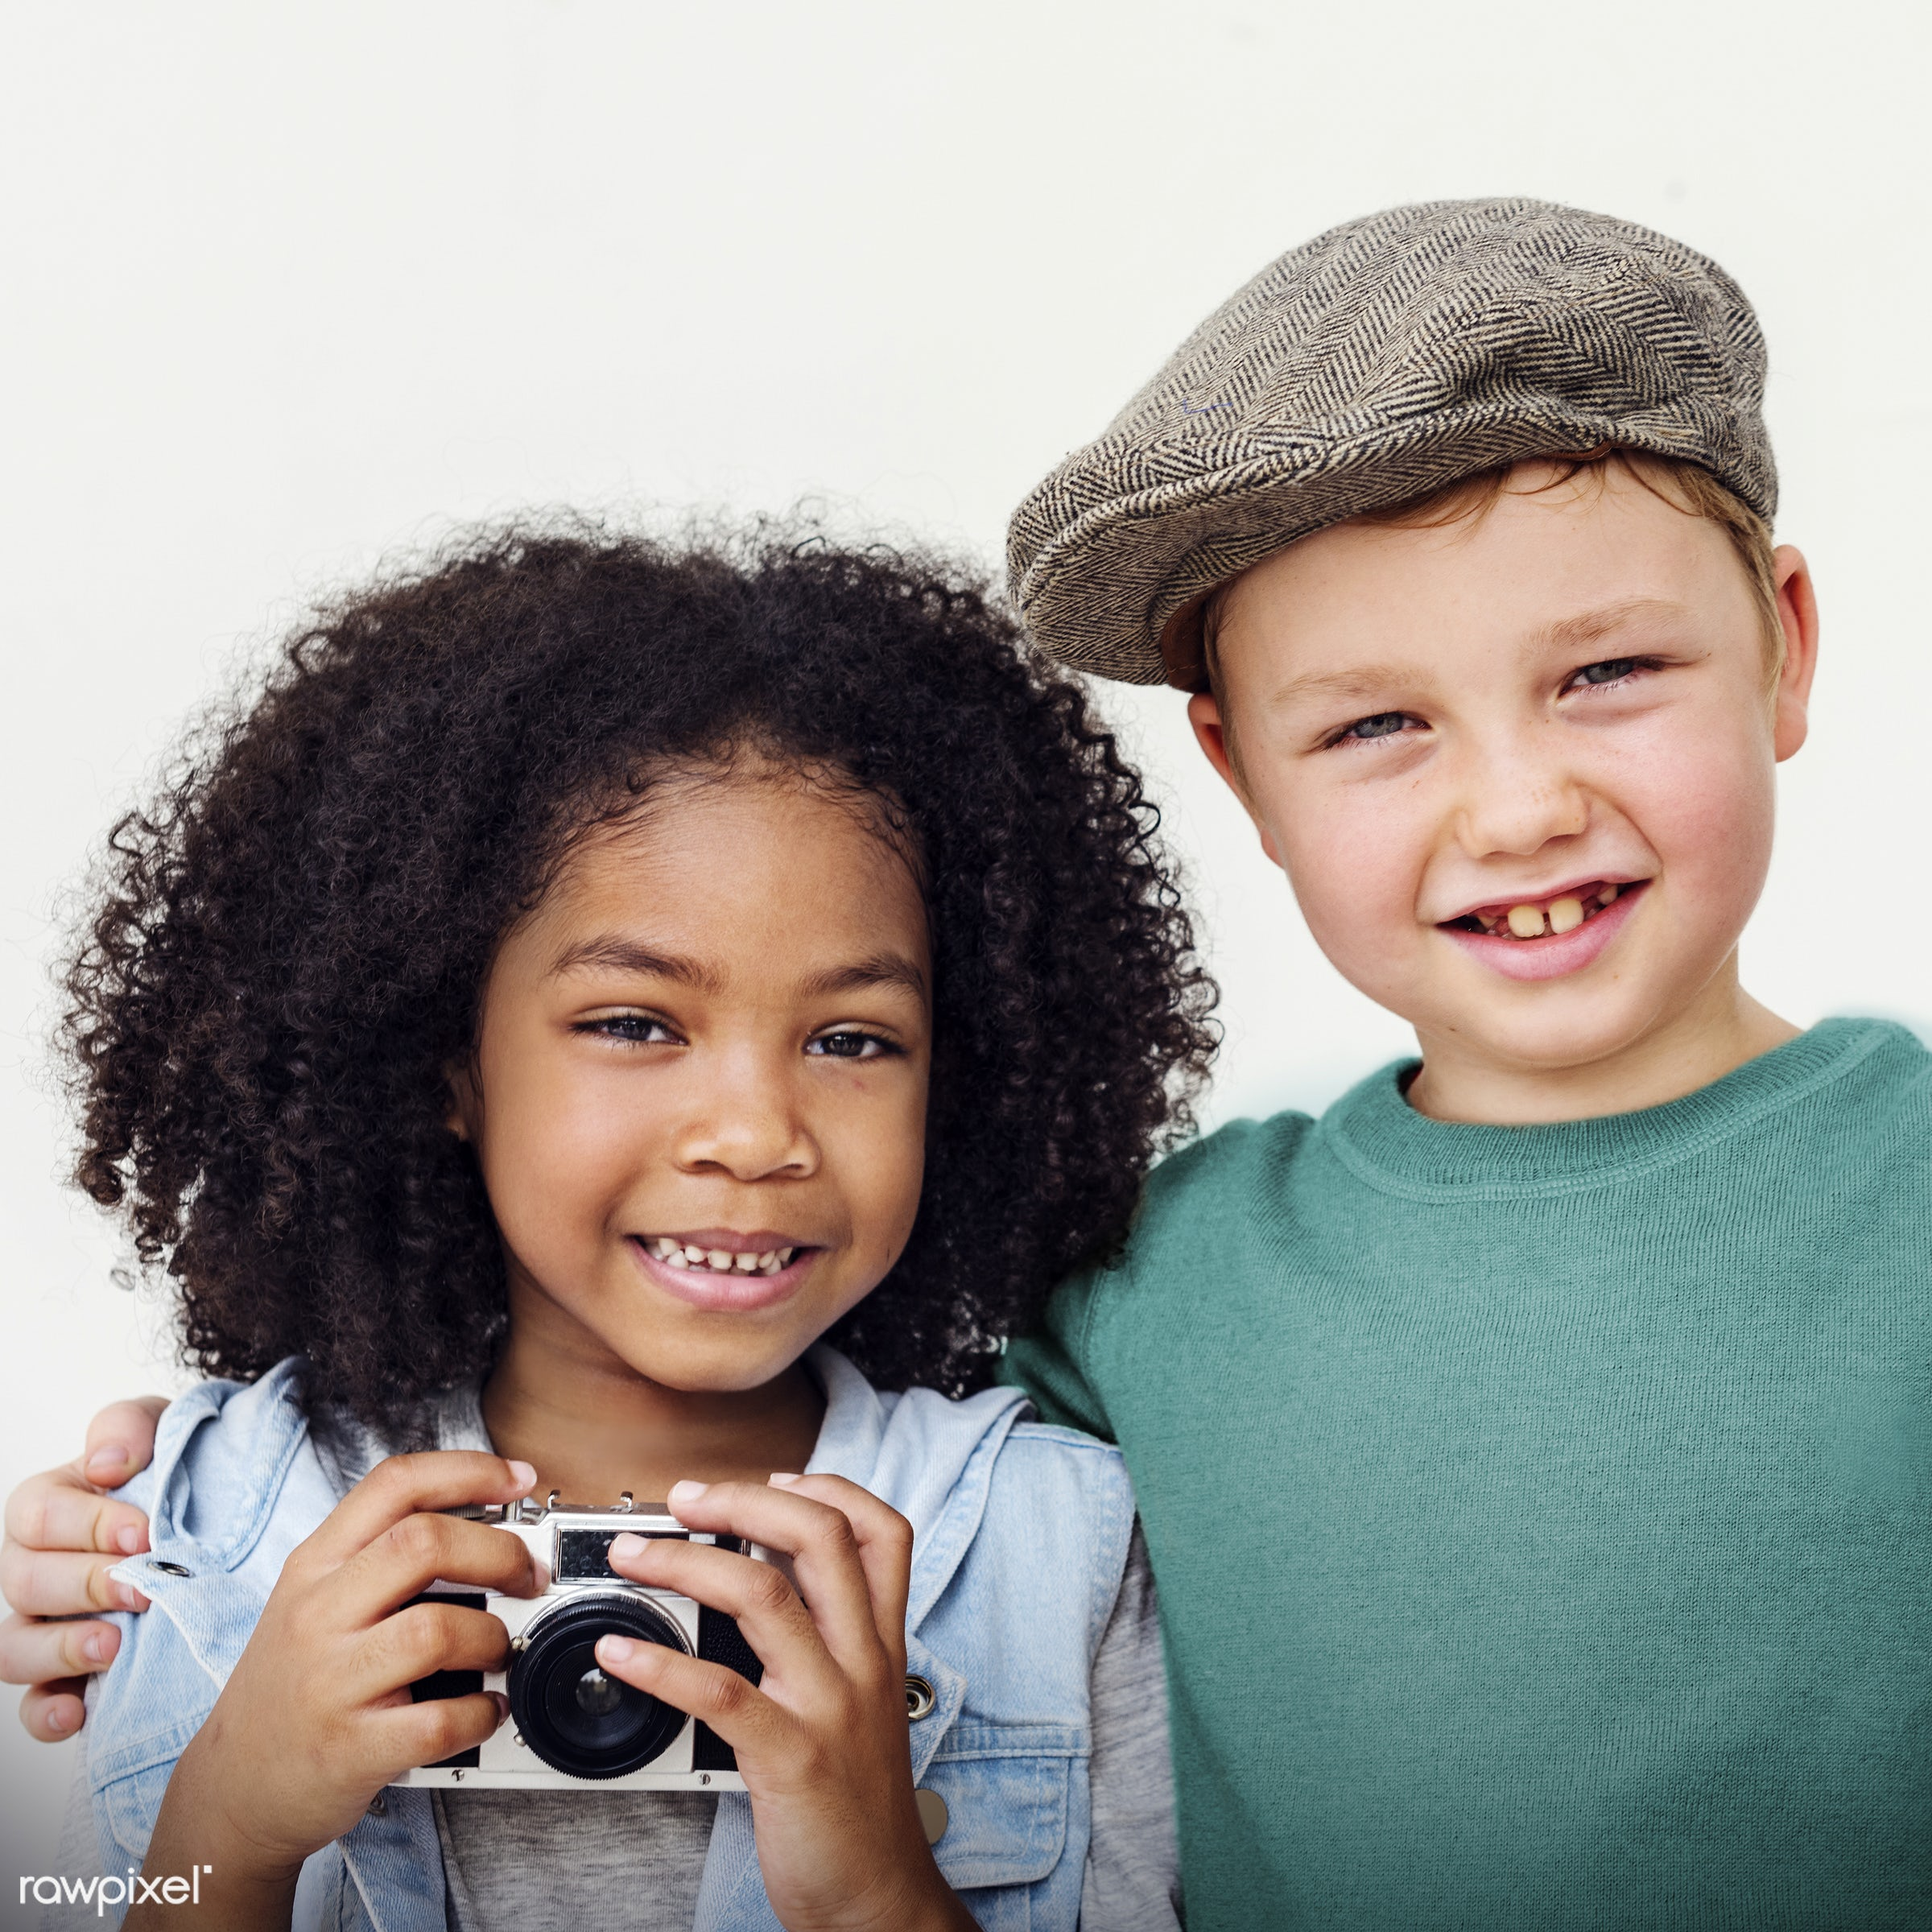 action, active, activity, adorable, african descent, boy, casual, caucasian, cheerful, chic, child, childhood, children,...